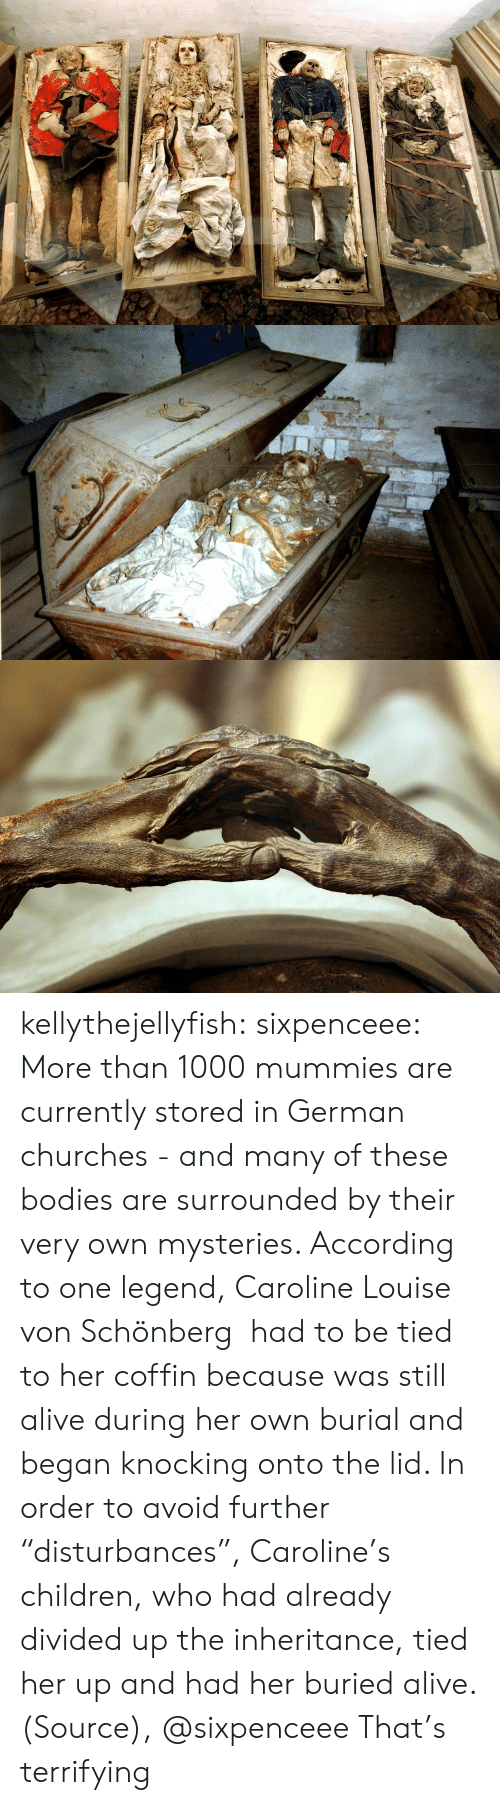 """caroline: kellythejellyfish: sixpenceee:  More than 1000 mummies are currently stored in German churches - and many of these bodies are surrounded by their very own mysteries. According to one legend, Caroline Louise von Schönberg had to be tied to her coffin because was still alive during her own burial and began knocking onto the lid. In order to avoid further """"disturbances"""", Caroline's children, who had already divided up the inheritance, tied her up and had her buried alive. (Source), @sixpenceee  That's terrifying"""